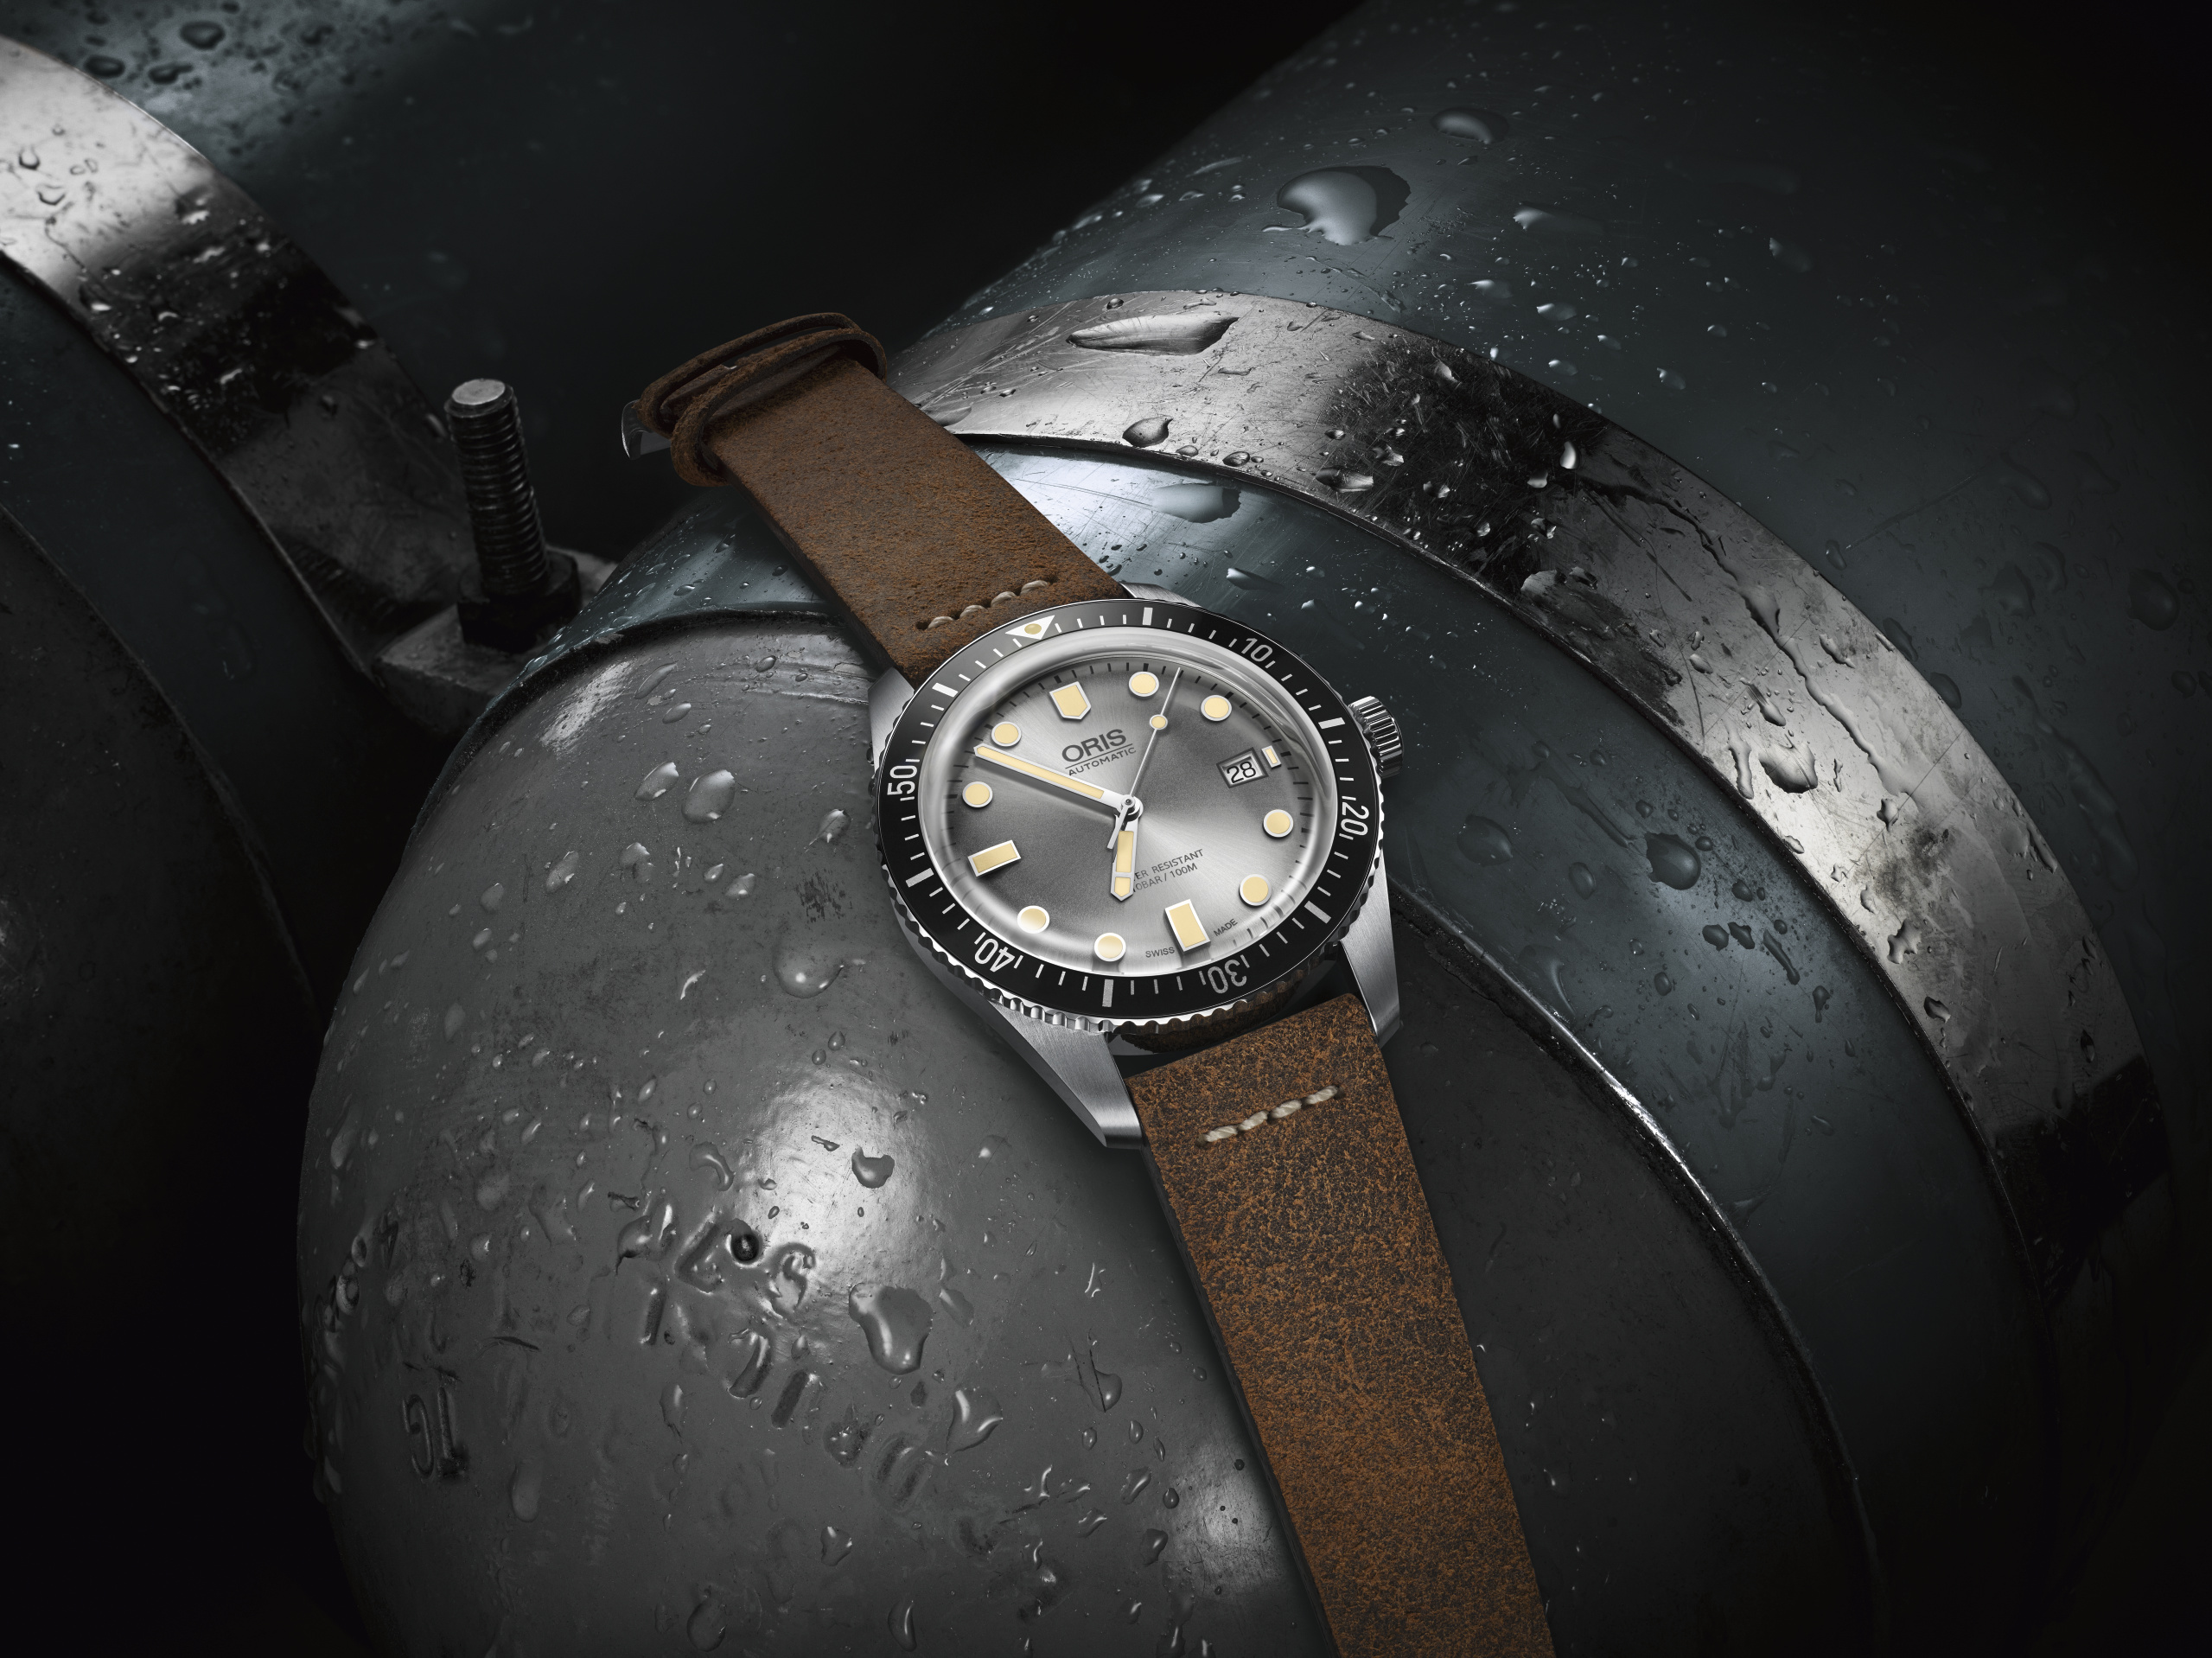 01 733 7720 4051-07 5 21 02 - Oris Divers Sixty-Five_HighRes_6495